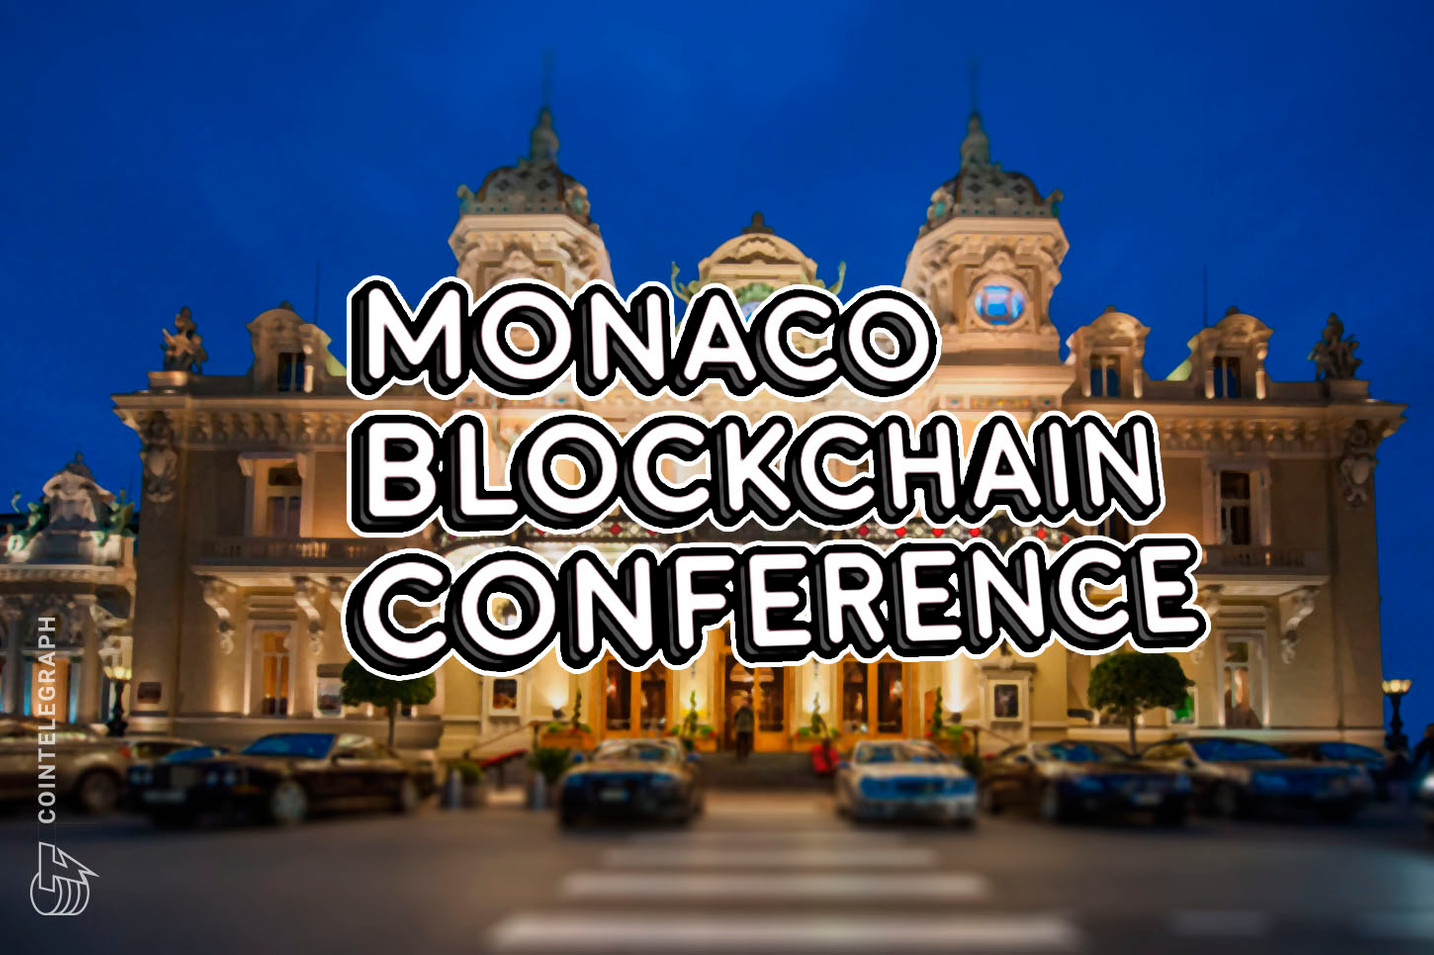 Monaco Blockchain Conference 2019 Brings Together Over 100 Investors